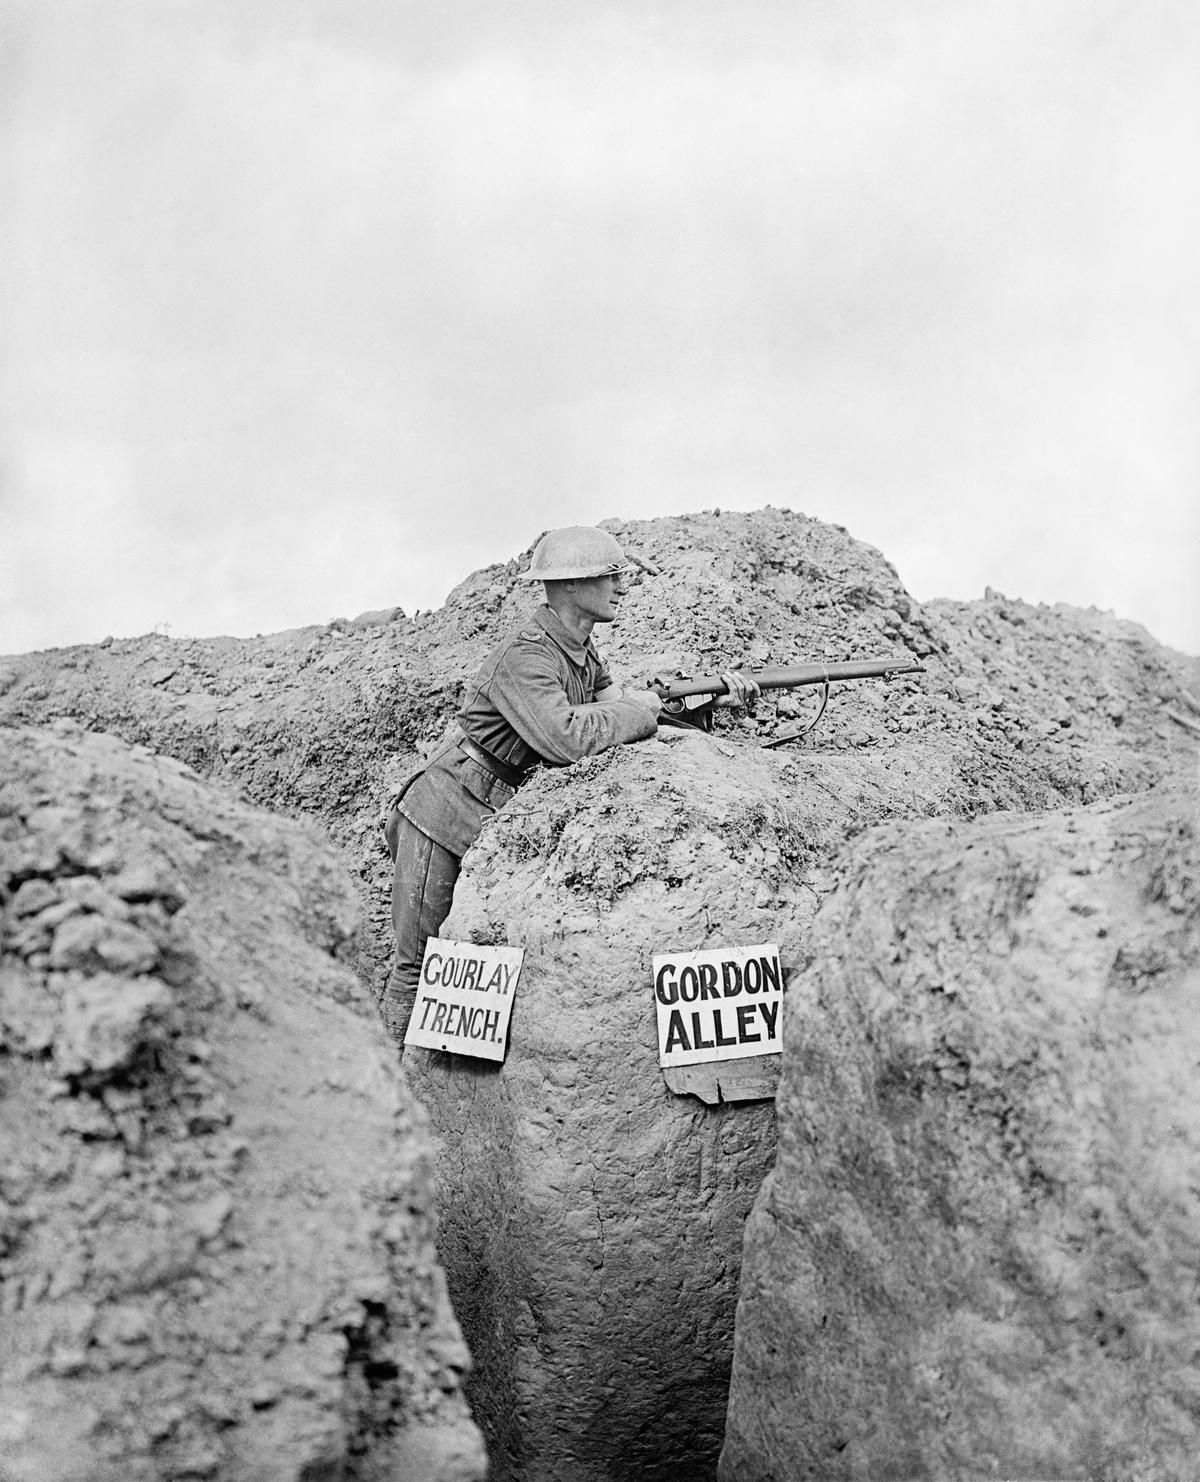 10 Photos Of Life In The Trenches